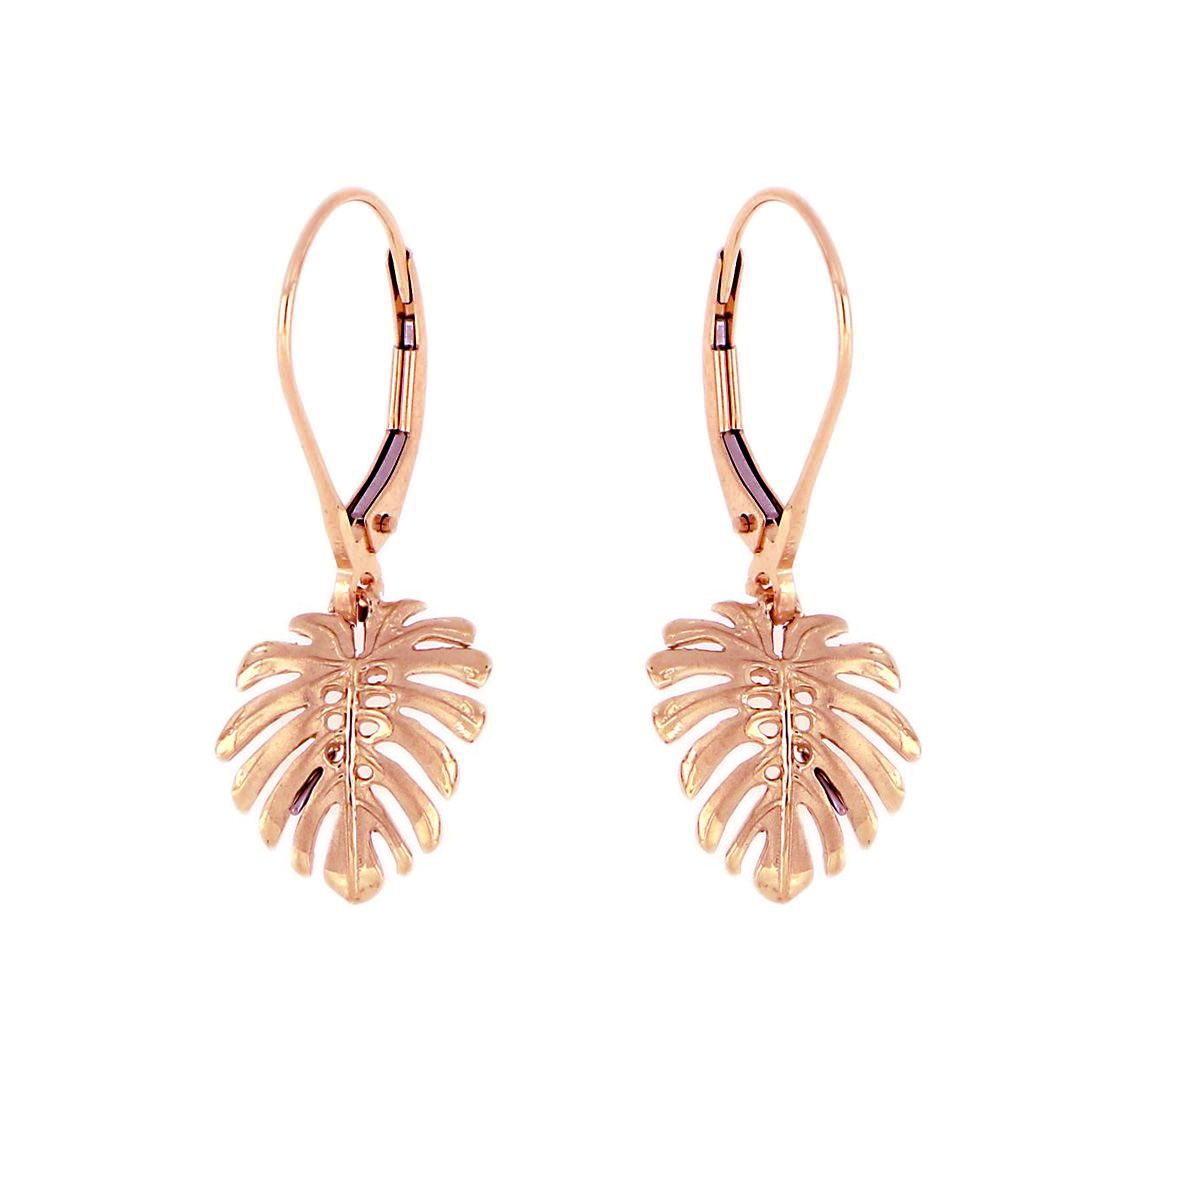 14KT Rose Gold Hawaiian Monstera Leaf Earrings with Lever Back (S)